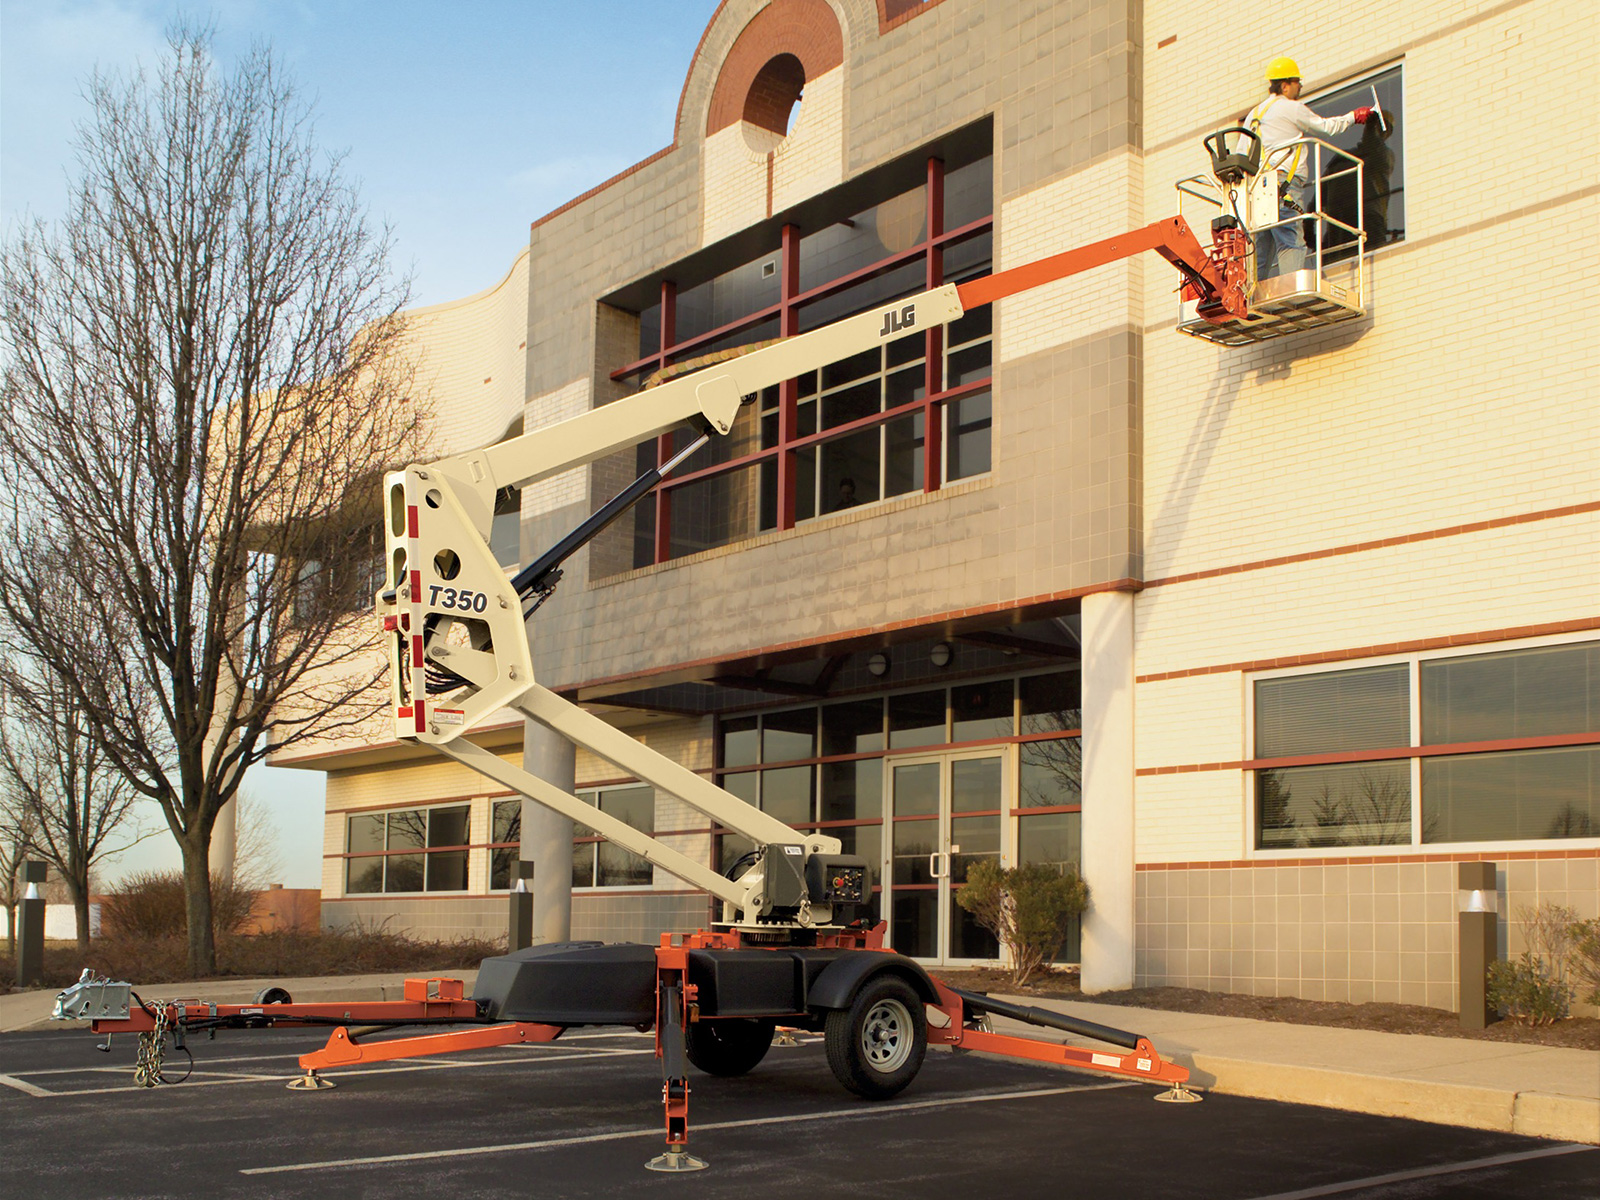 t350 towable boom lift jlg tow pro® boom lift